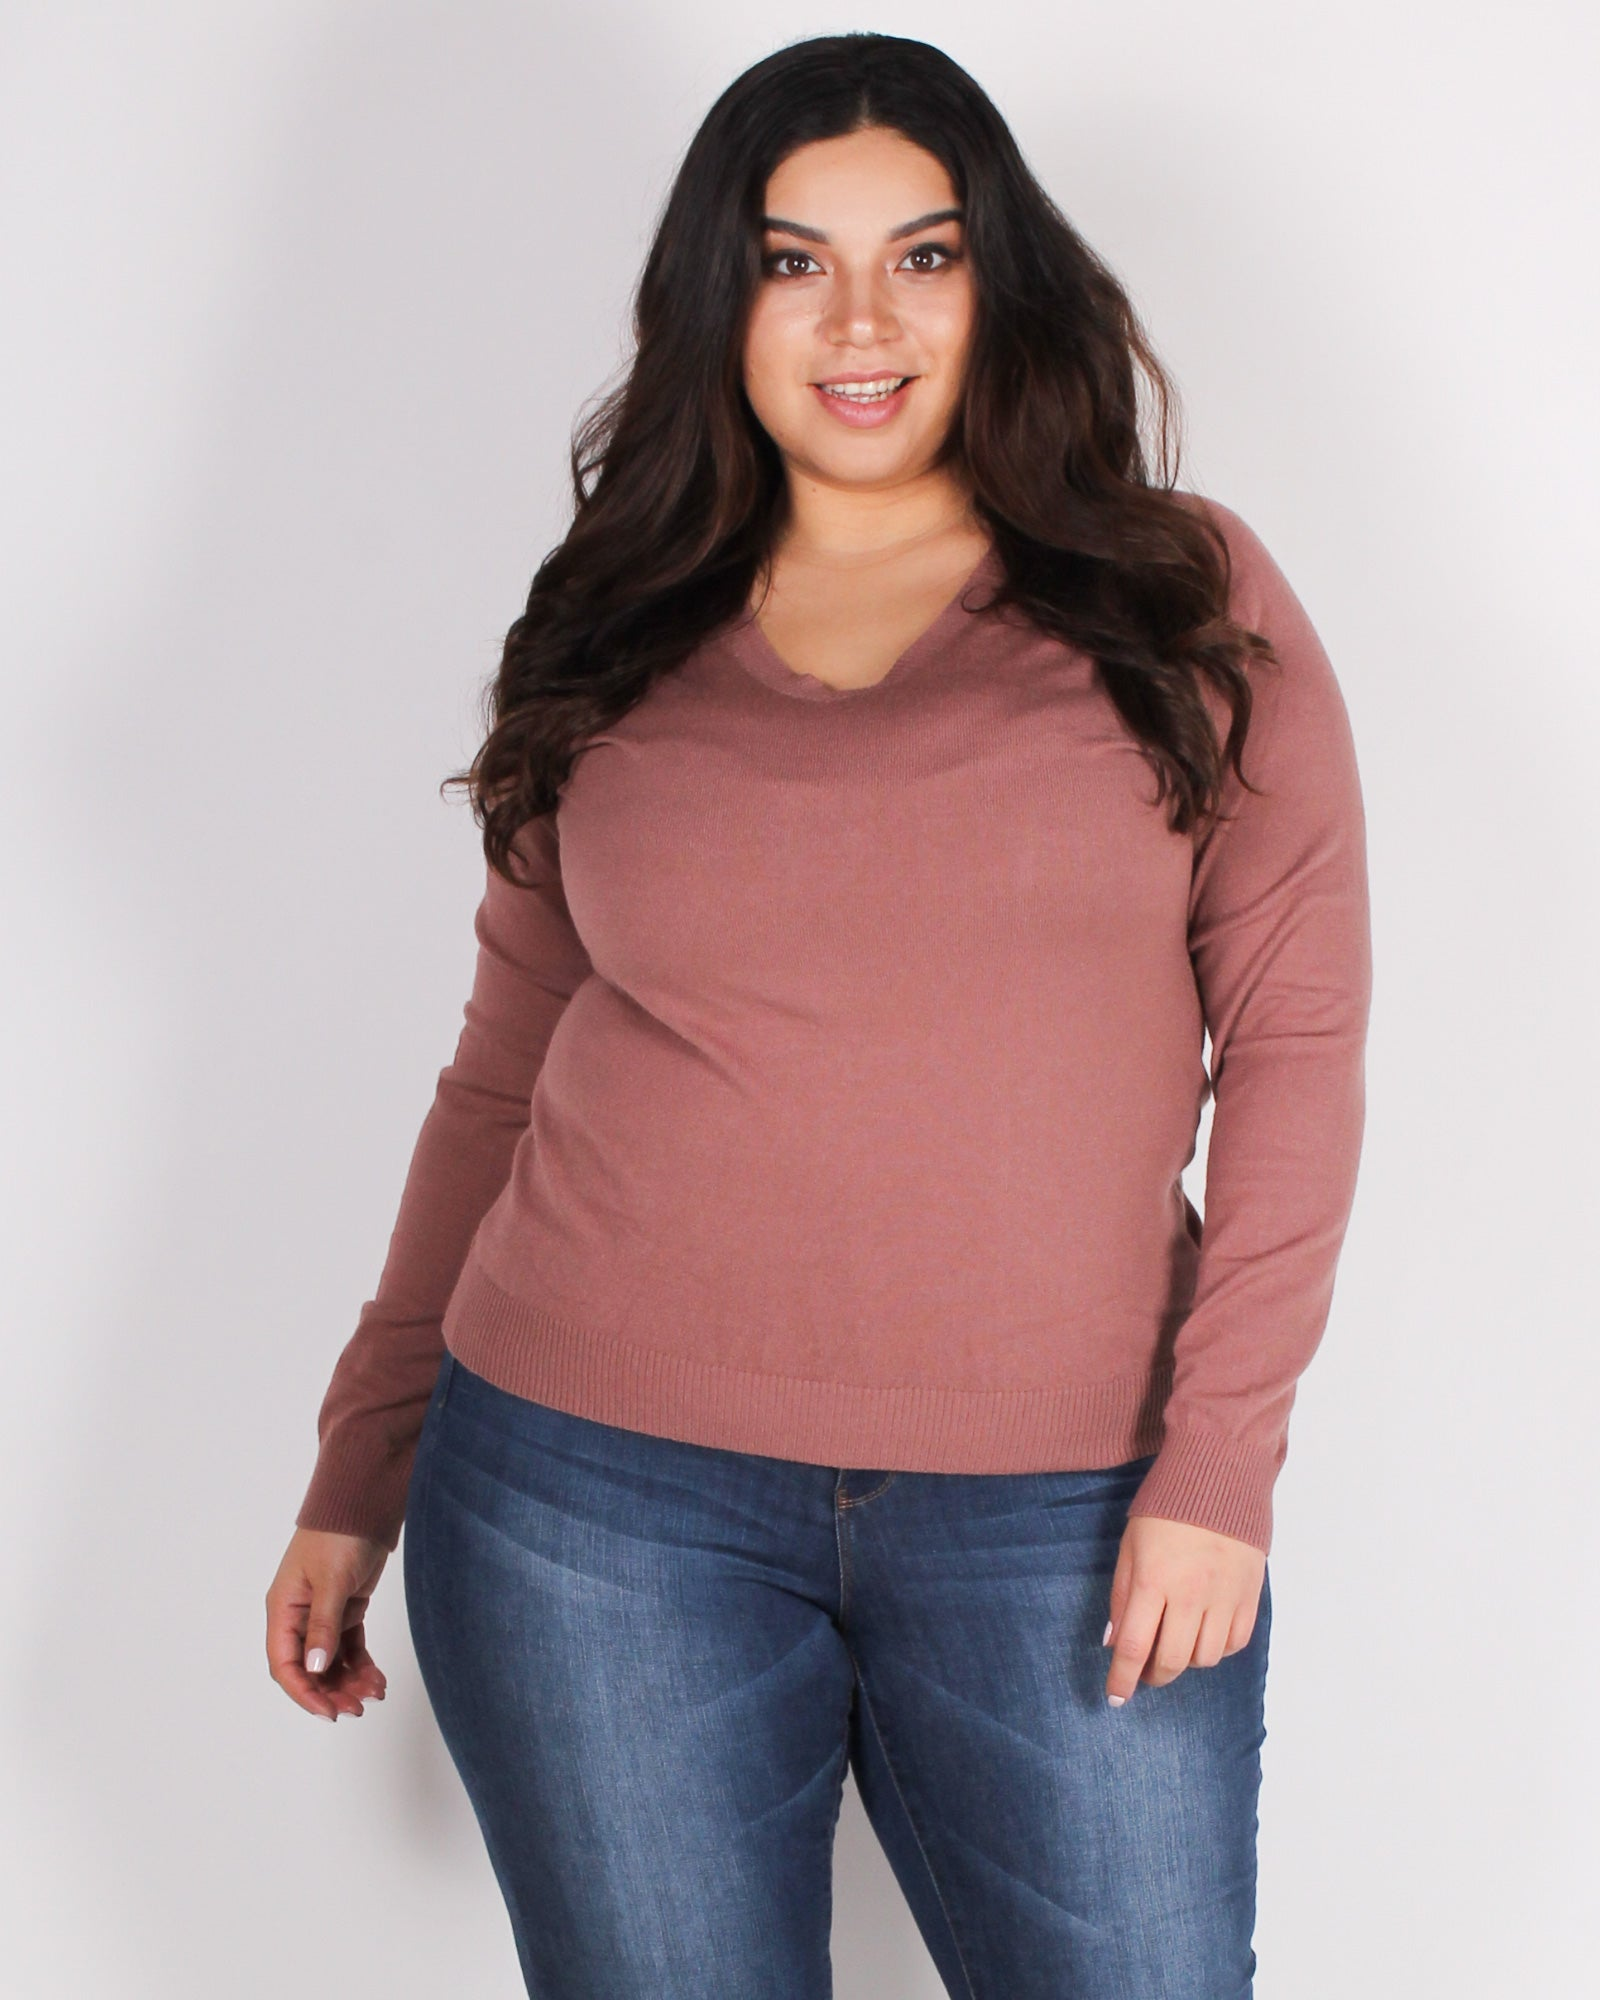 Fashion Q Shop Q Do it Right Sweater (Mauve) 9355WYX